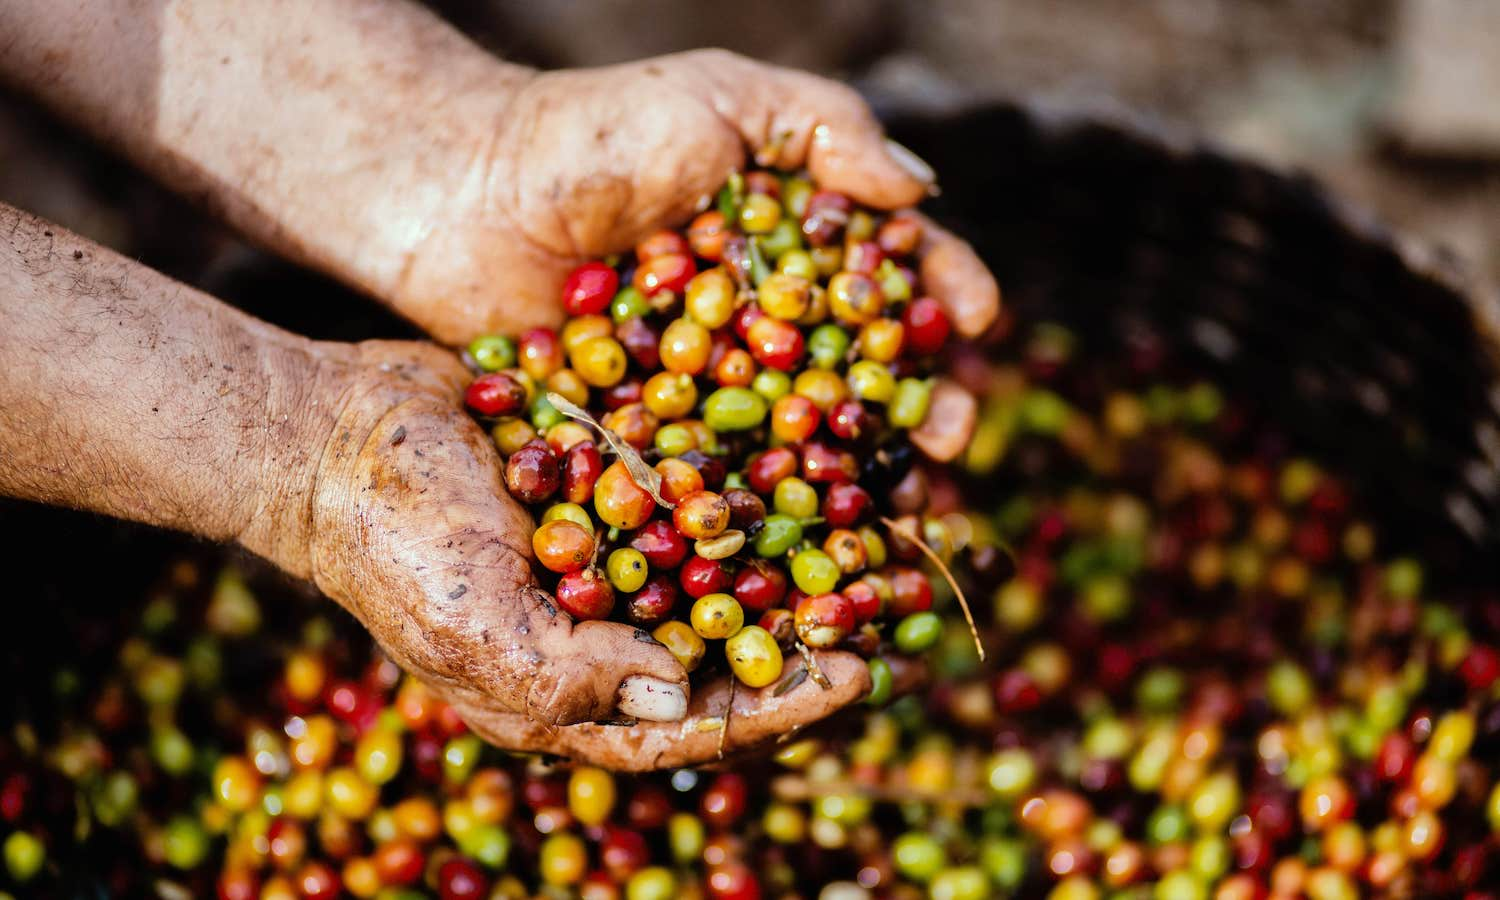 Coffee is facing a sustainability crisis. A Global Coffee Fund would help, say Jeff Sachs and Kaitlin Cordes, Columbia University.